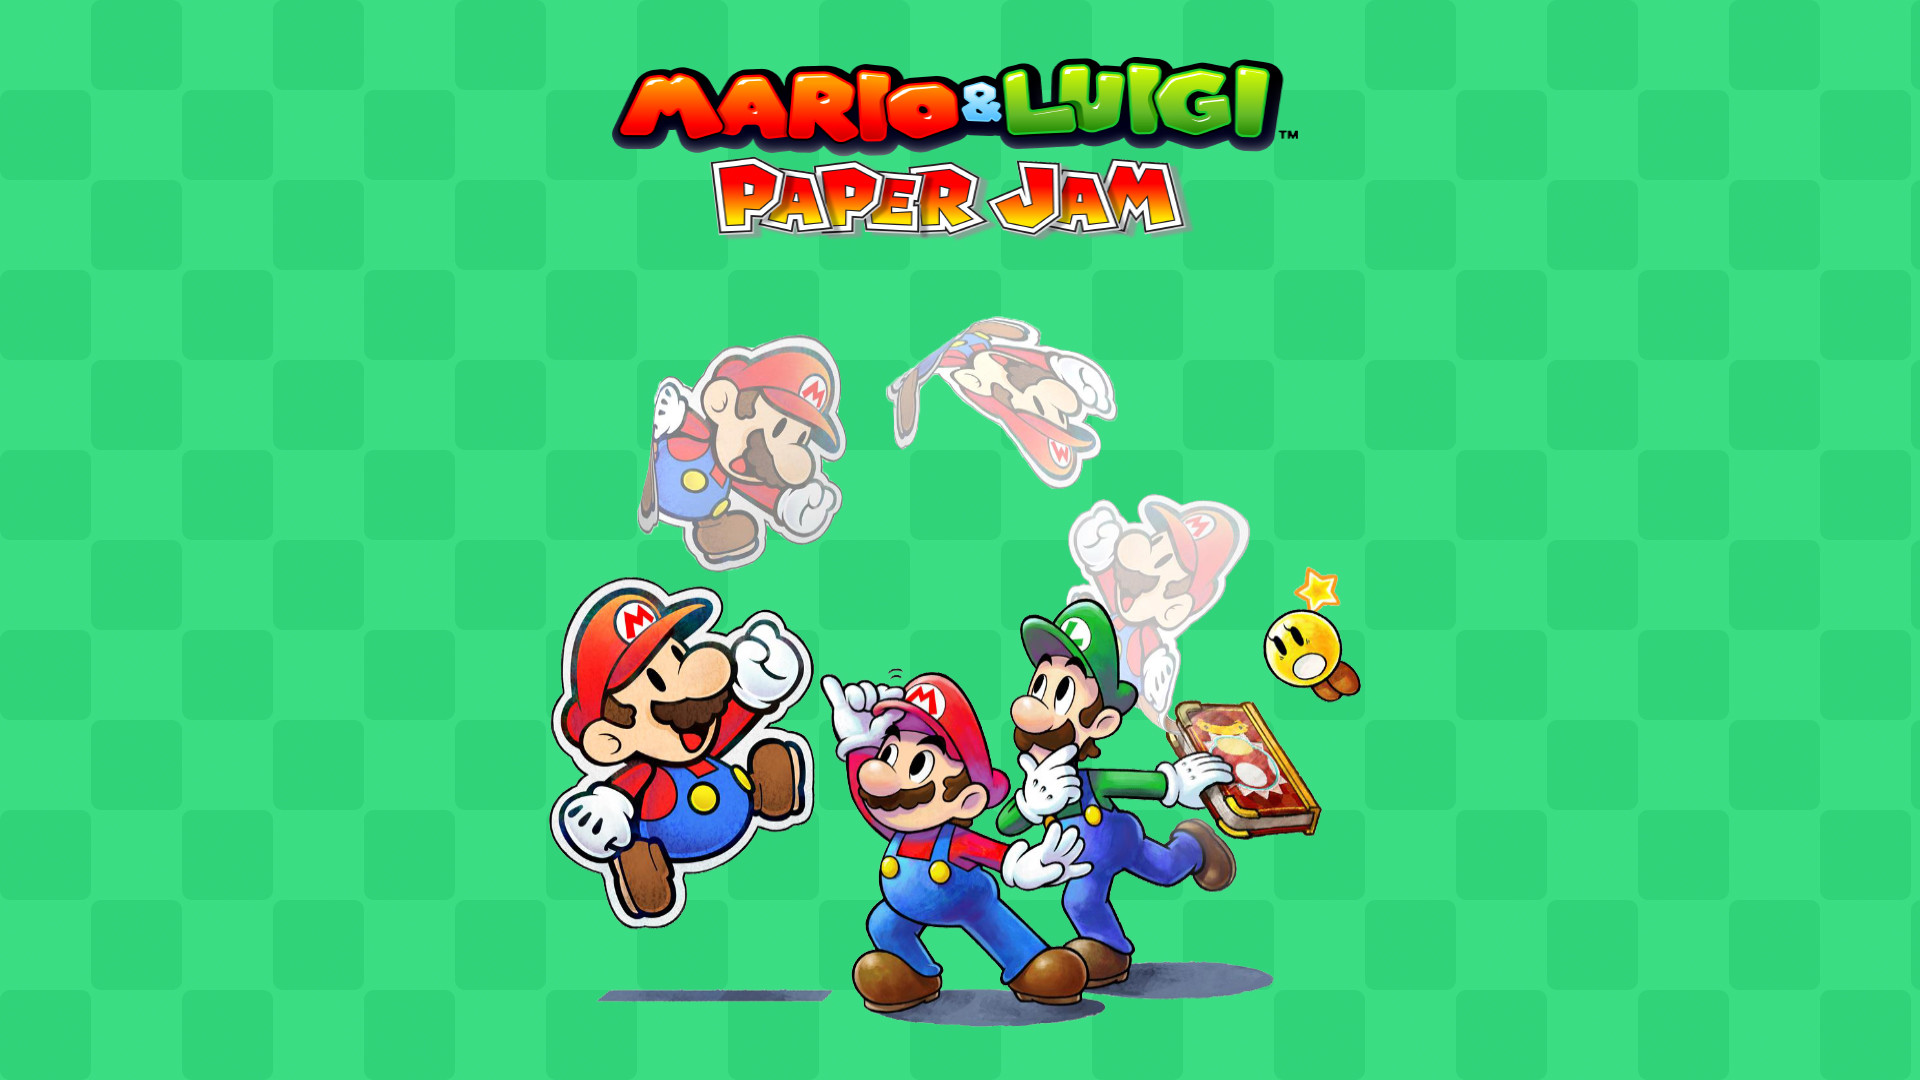 1920x1080 4 Mario & Luigi: Paper Jam HD Wallpapers | Backgrounds - Wallpaper Abyss